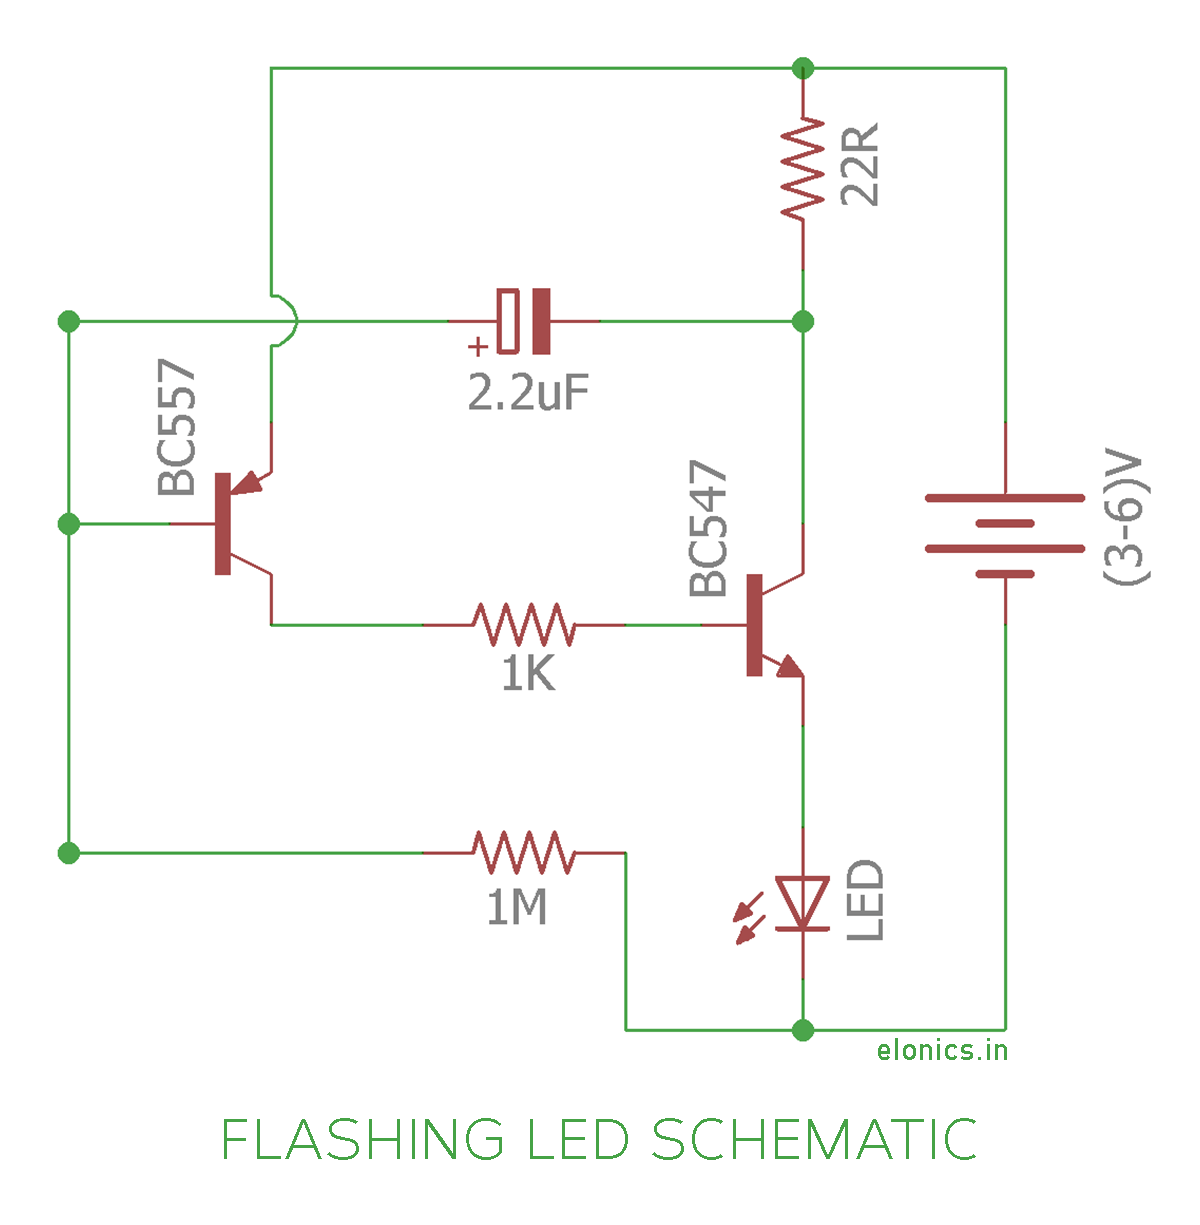 Flashing Blinking Led Circuit Using Transistors Schematic Arduino Use Of Transistor In A